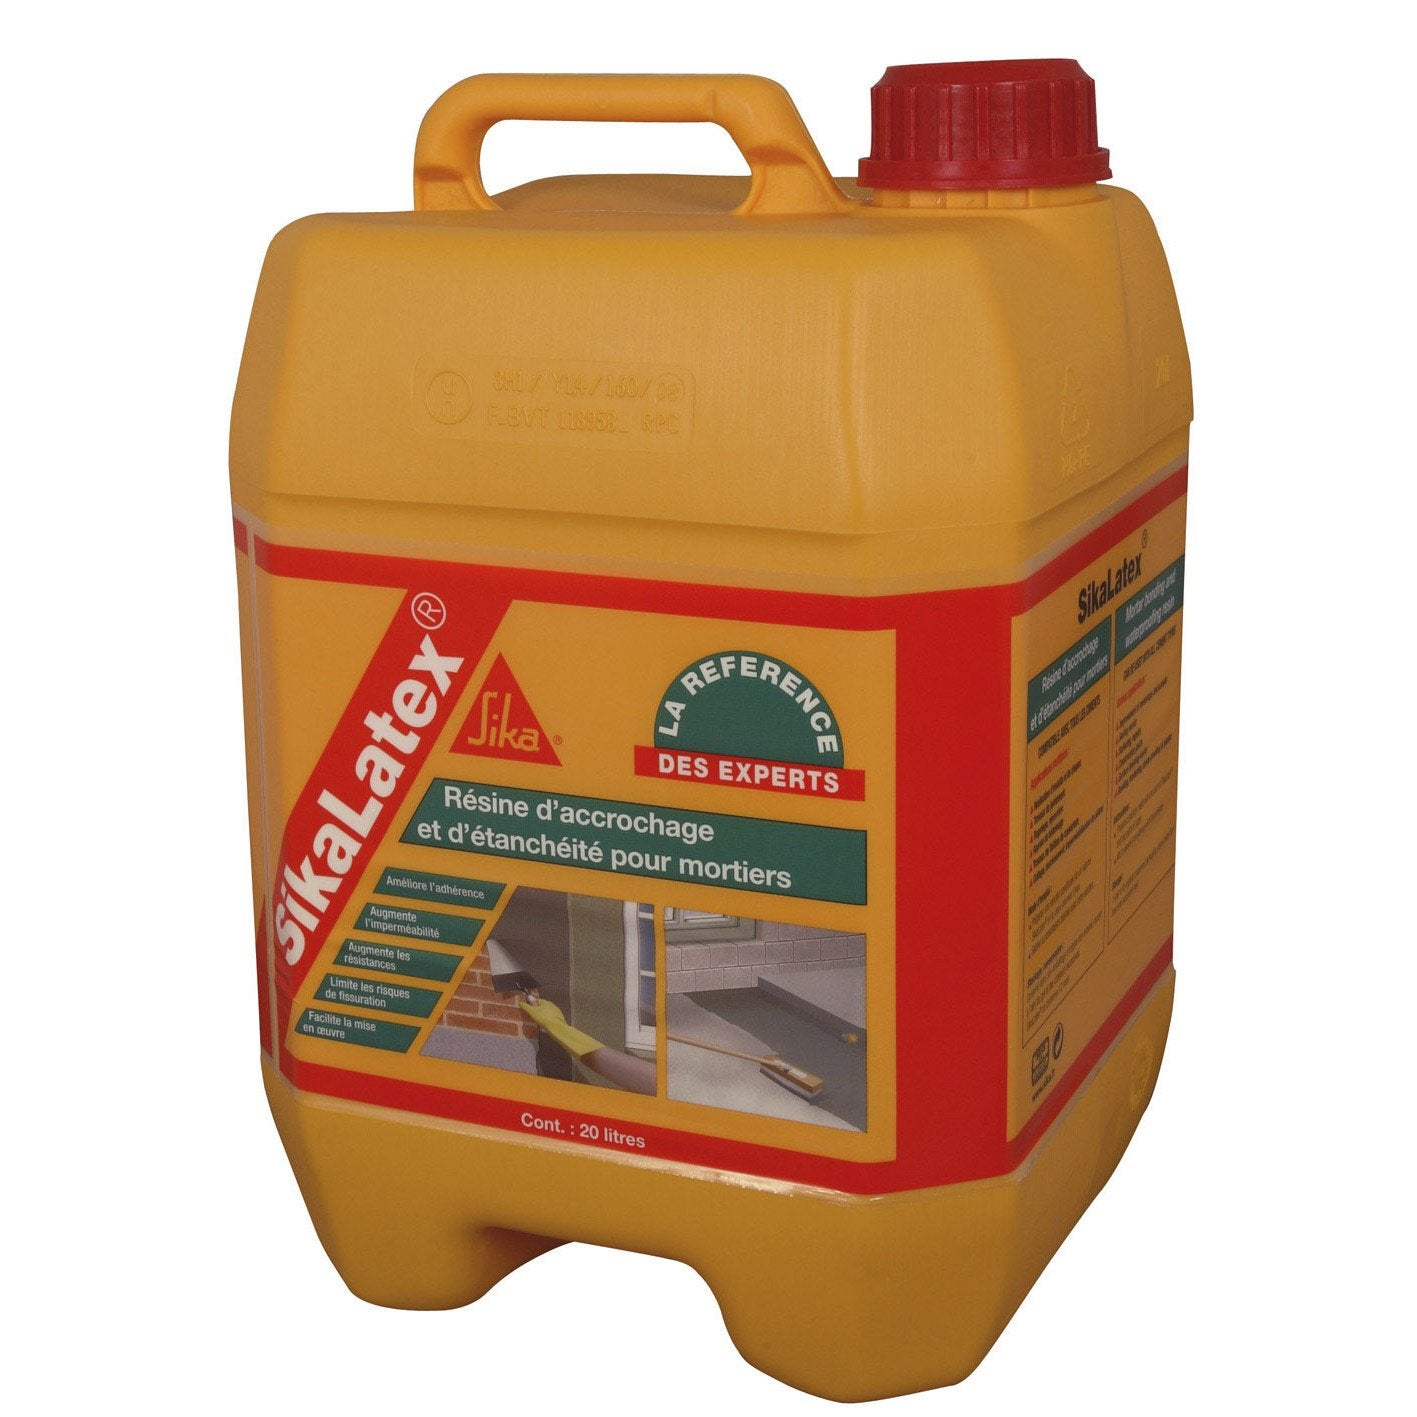 R Sine D Adh Rence Concentr E Pour Mortier Sika Sikalatex 20 L Blanc